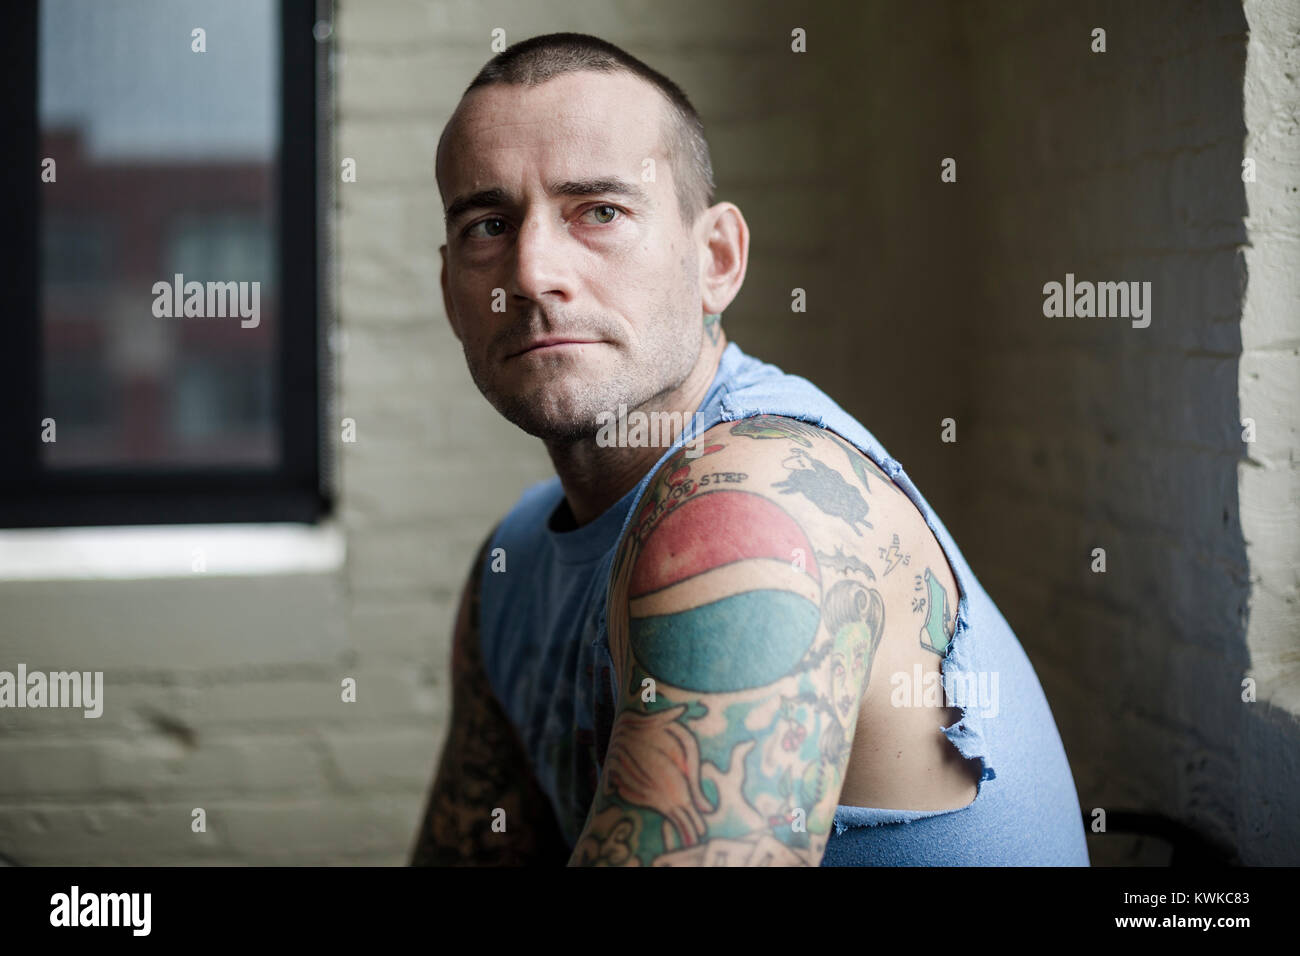 Former WWF Wrestler, CM Punk (Phil Brooks) photographed at his apartment in Milwaukee. - Stock Image